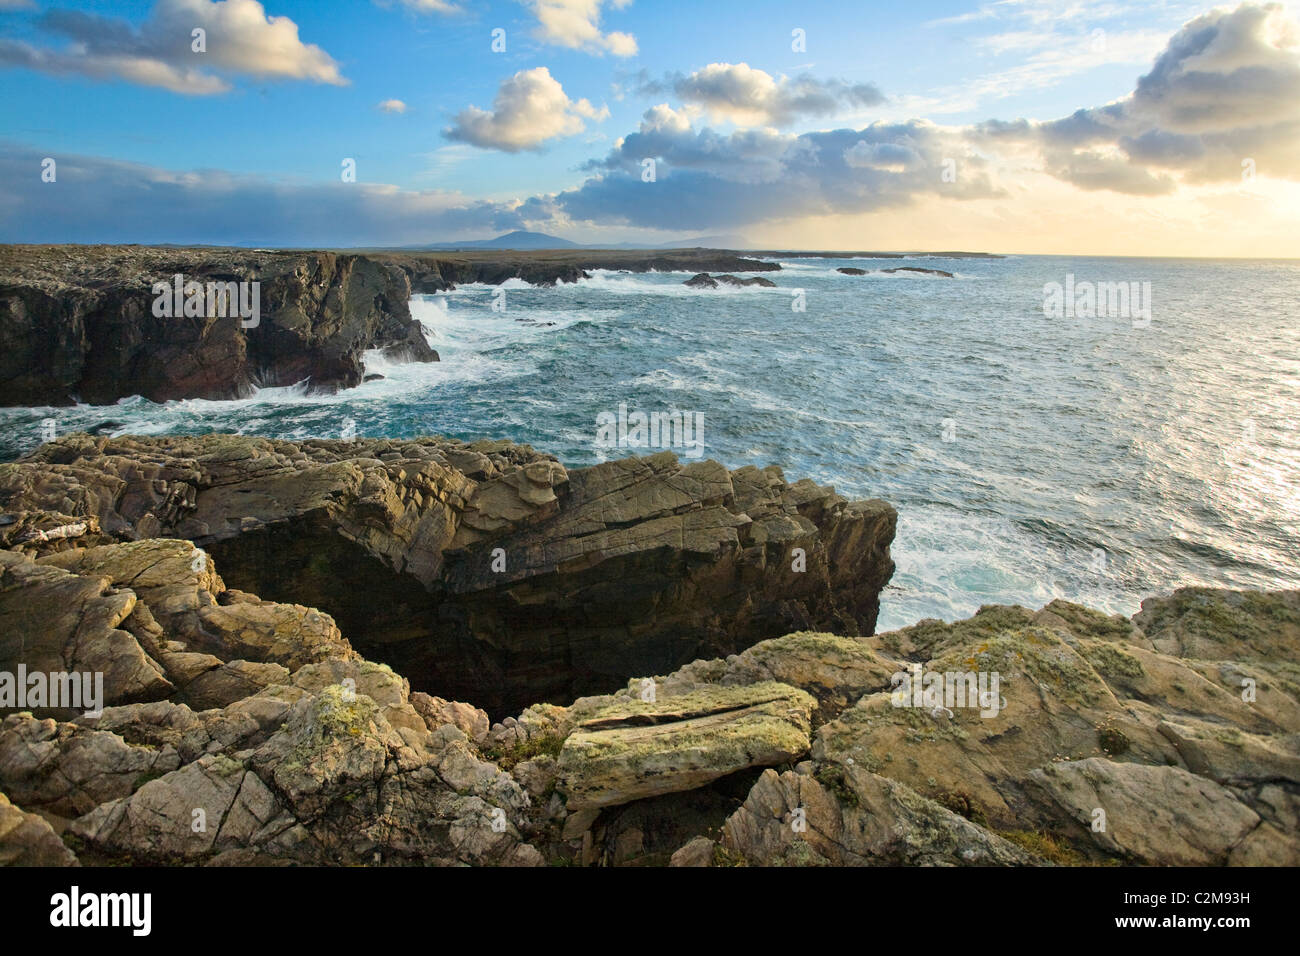 Belmullet coastline near Erris Head, County Mayo, Ireland. - Stock Image